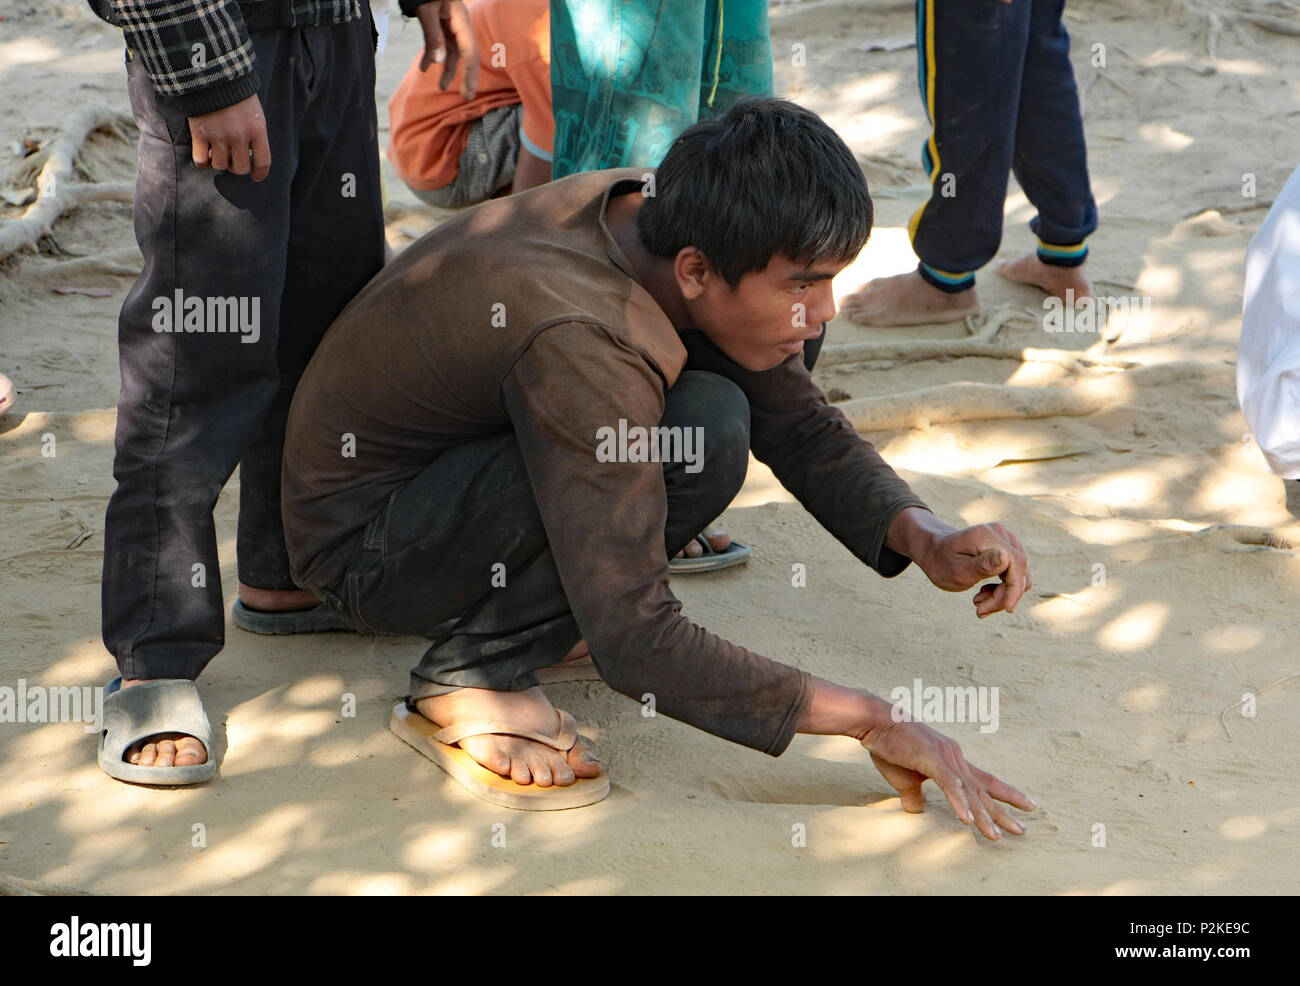 A Cambodian boy crouches on the ground playing a game of Marbles concentrating as he flicks the ball into play. In the playground of Ream School. - Stock Image